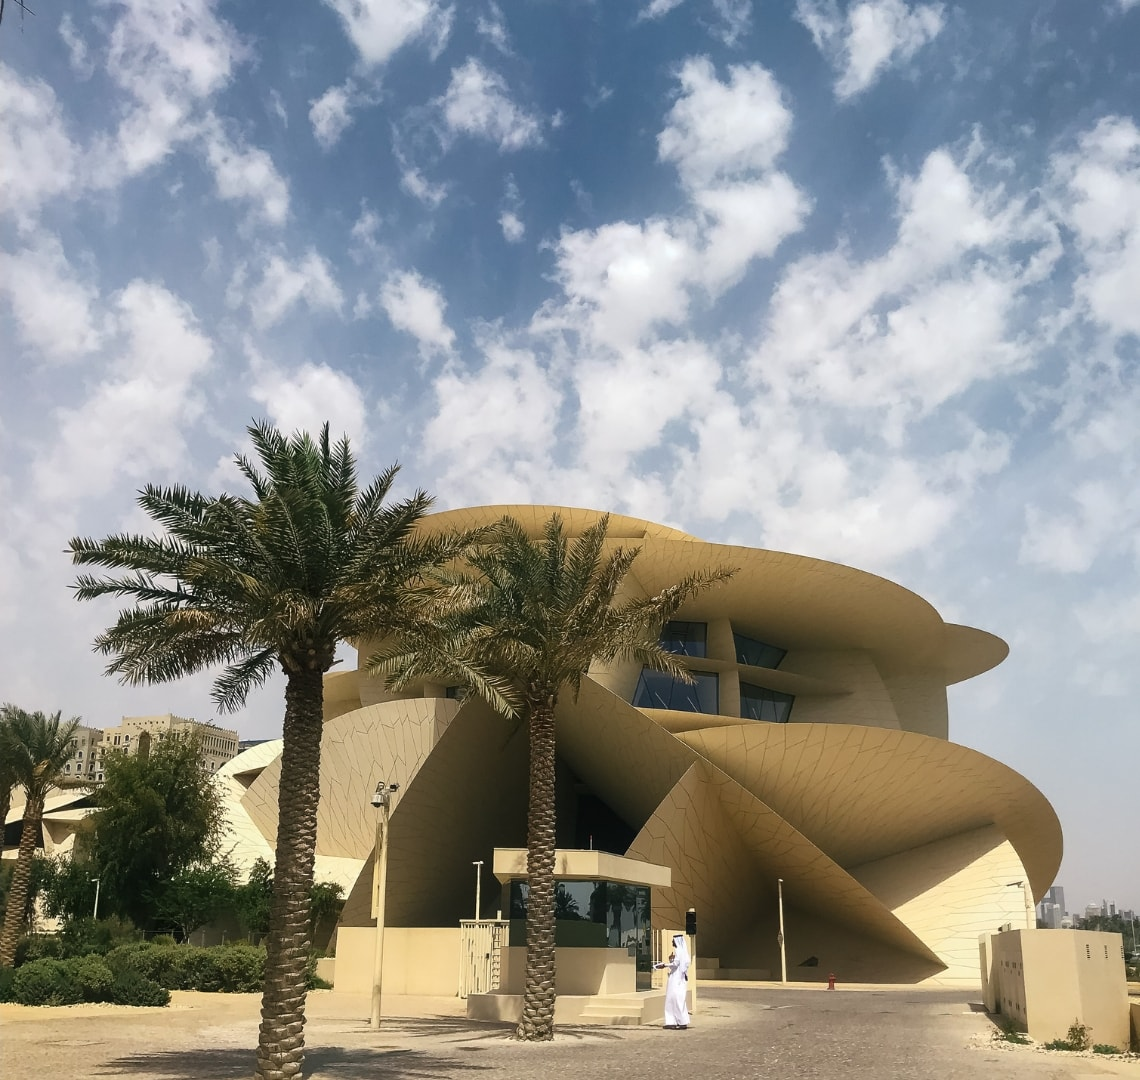 Exploring the new National Museum of Qatar